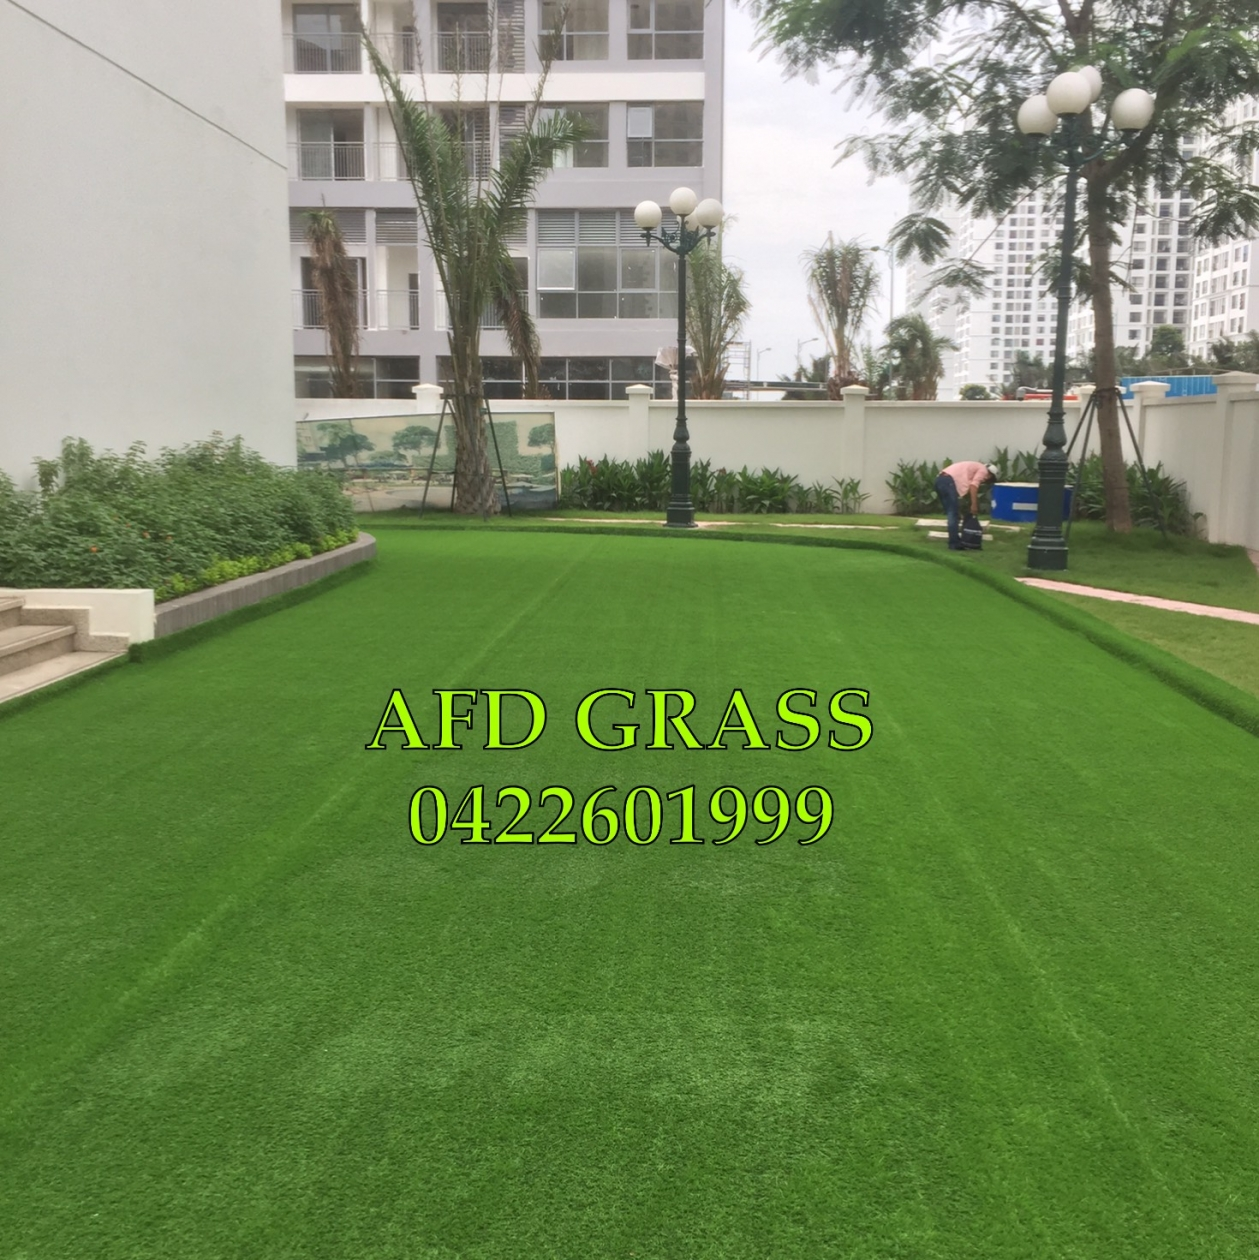 THI CoNG CoNG TRiNH  VINSCHOOL TIMES CITY _mkMzg → Công ty AFD grass